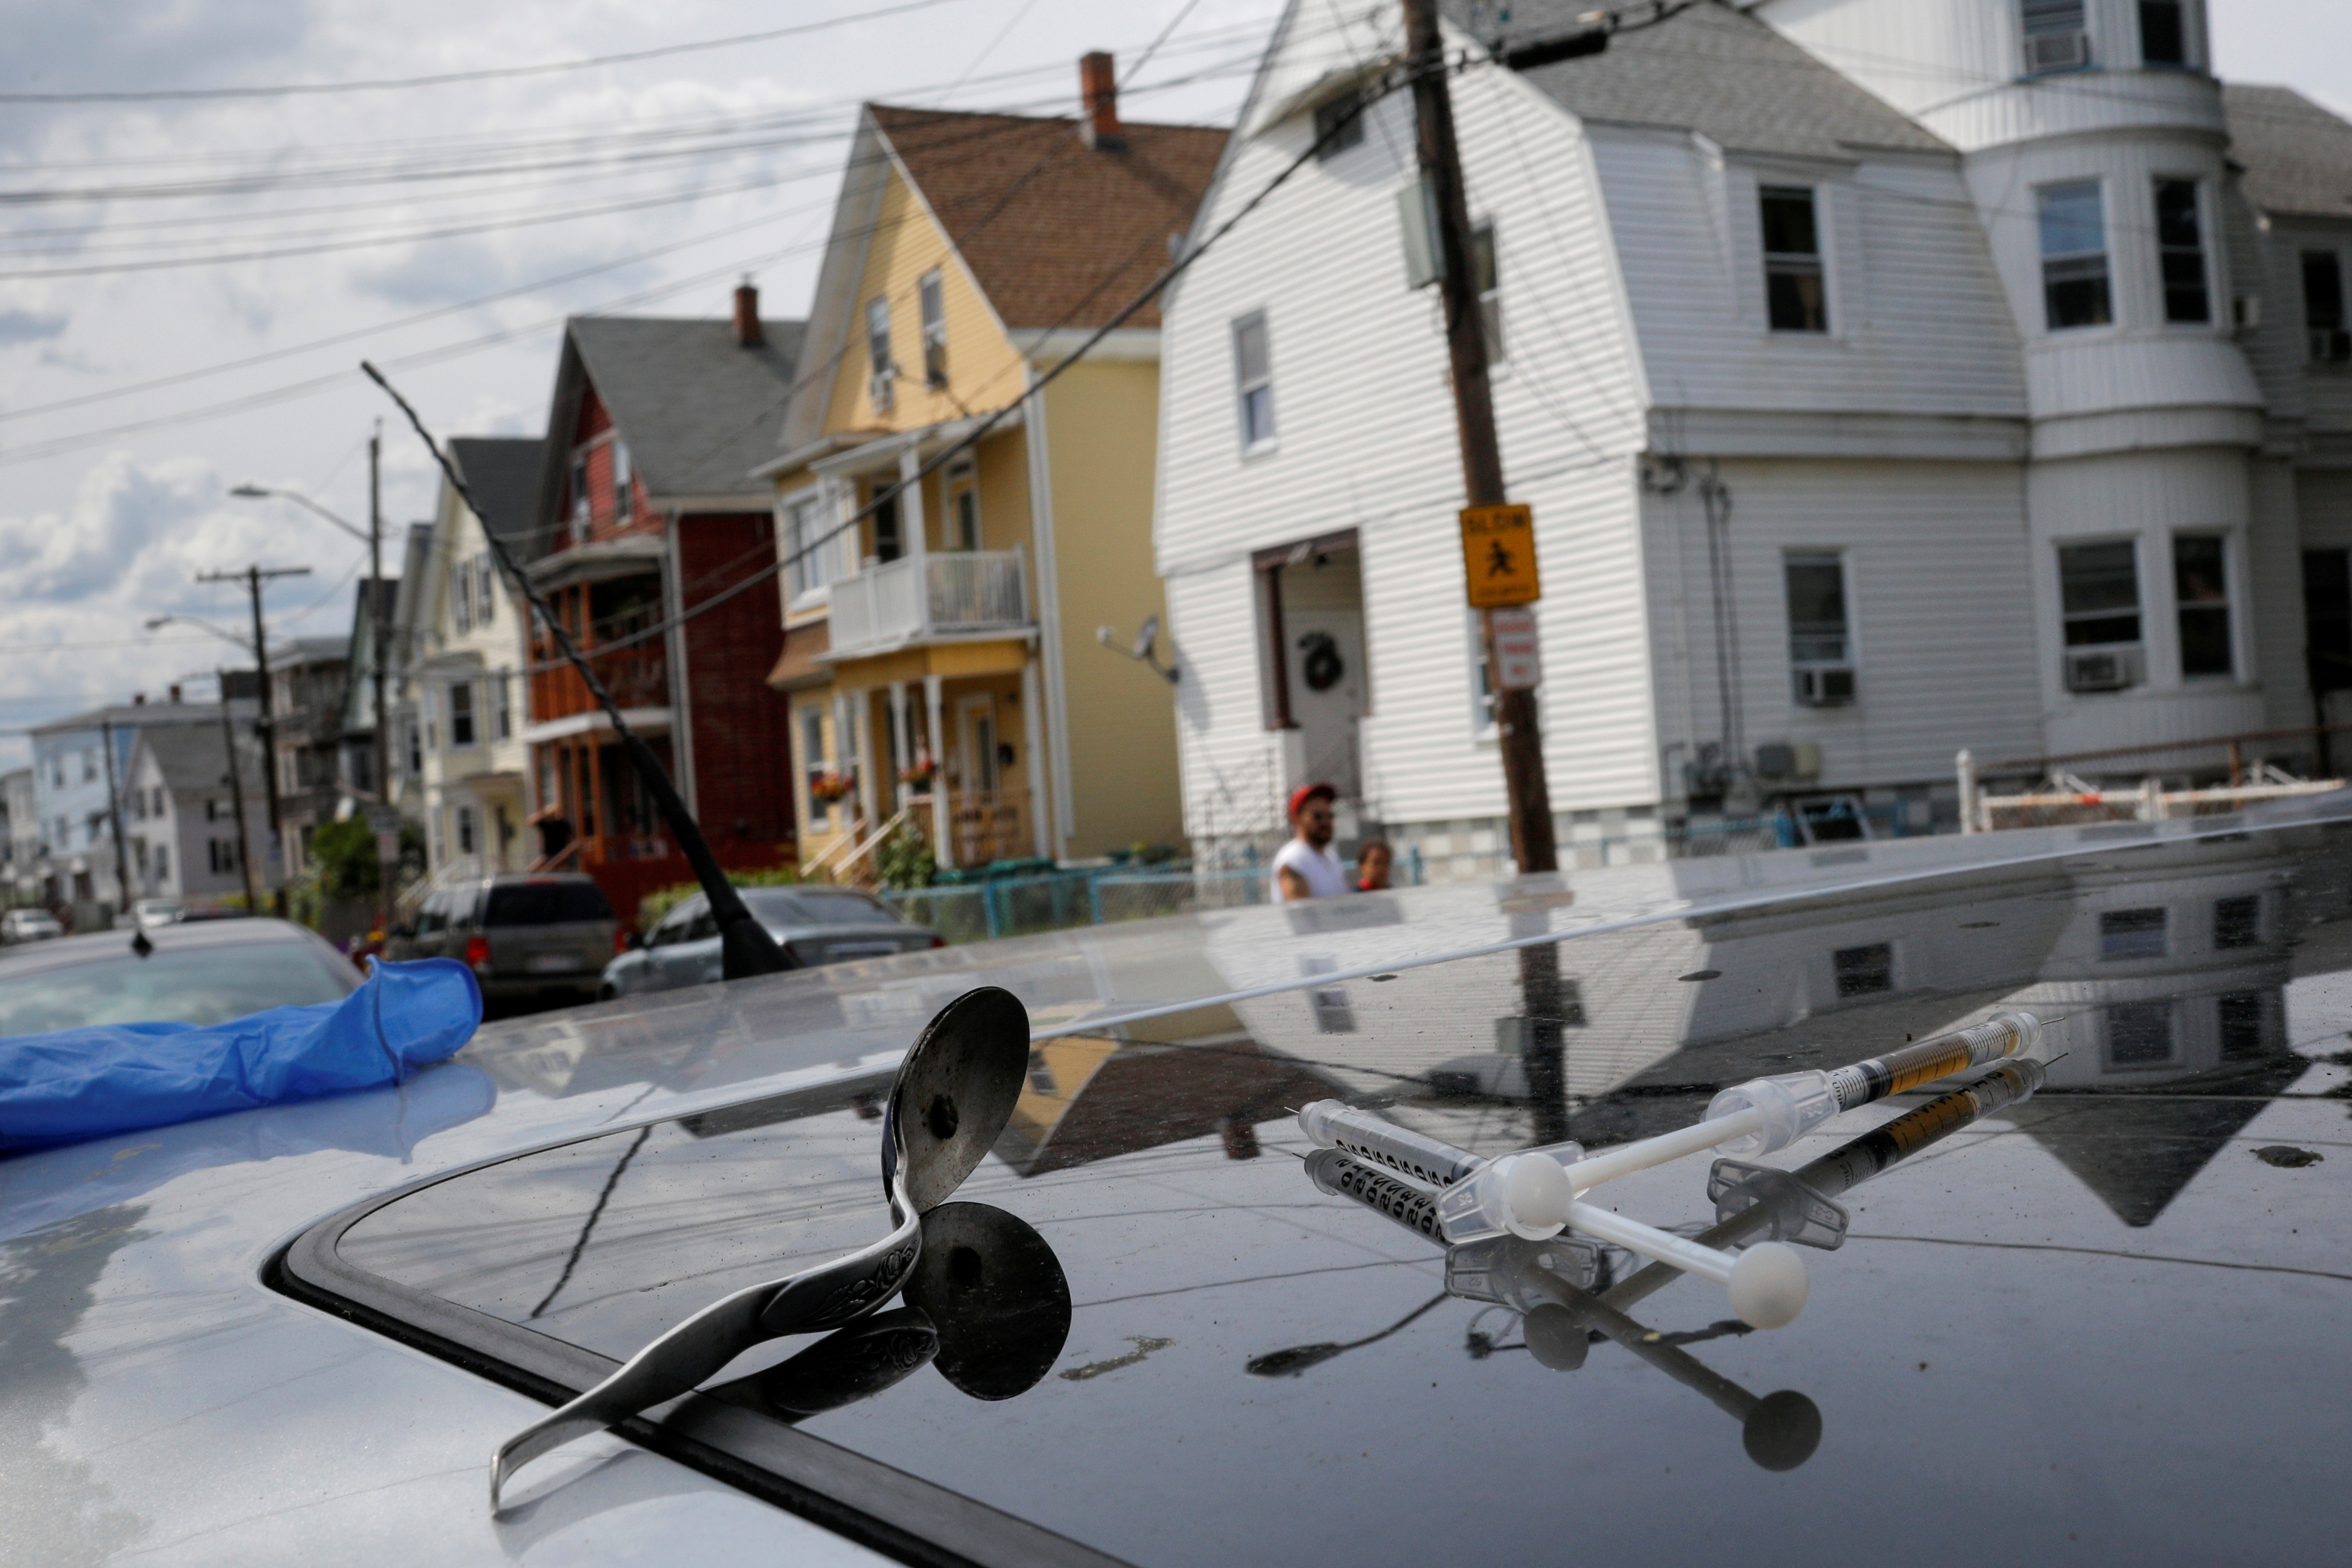 A full syringe, empty syringe and spoon sit on the roof of the car in which a man in his 20's overdosed on an opioid in the Boston suburb of Lynn, Massachusetts, August 14, 2017. REUTERS/Brian Snyder/File Photo